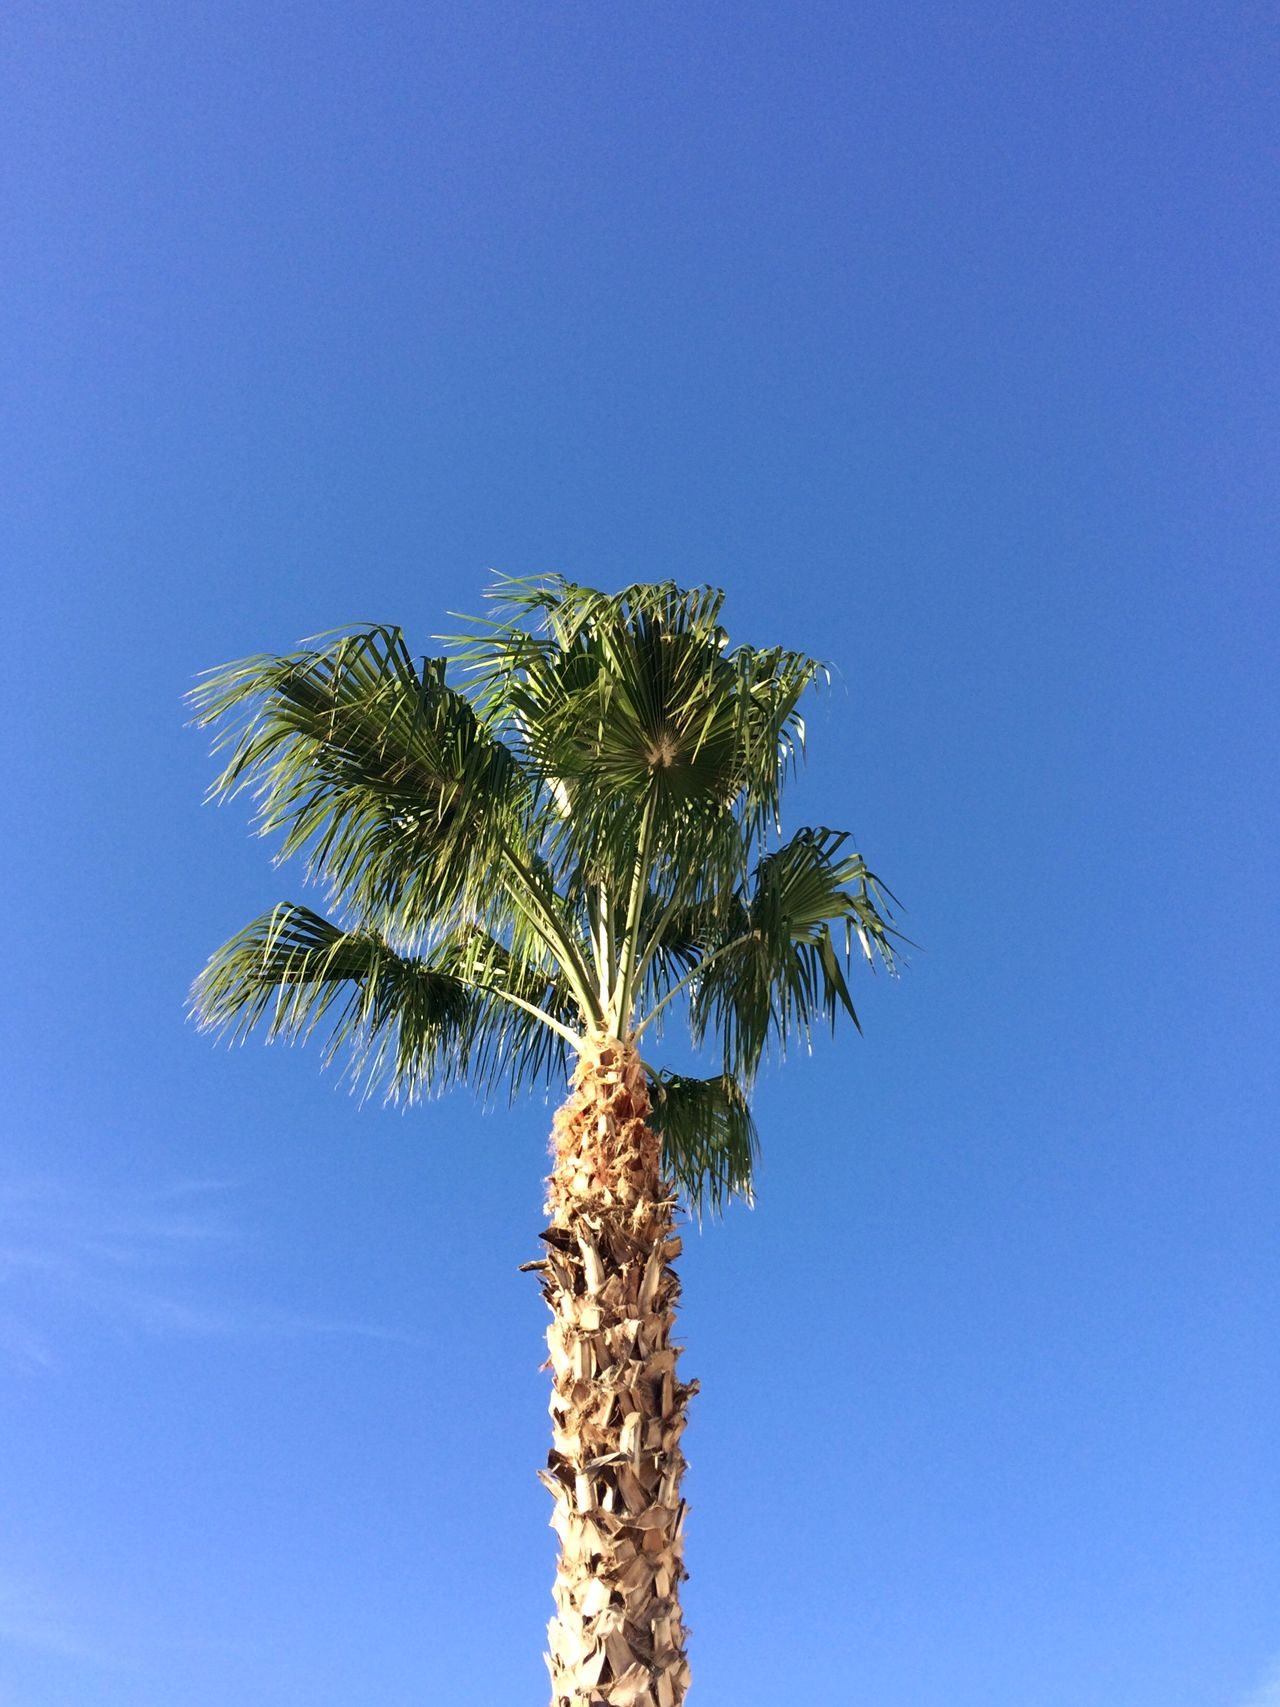 Los Cabos Mexico Check This Out Blue Sky